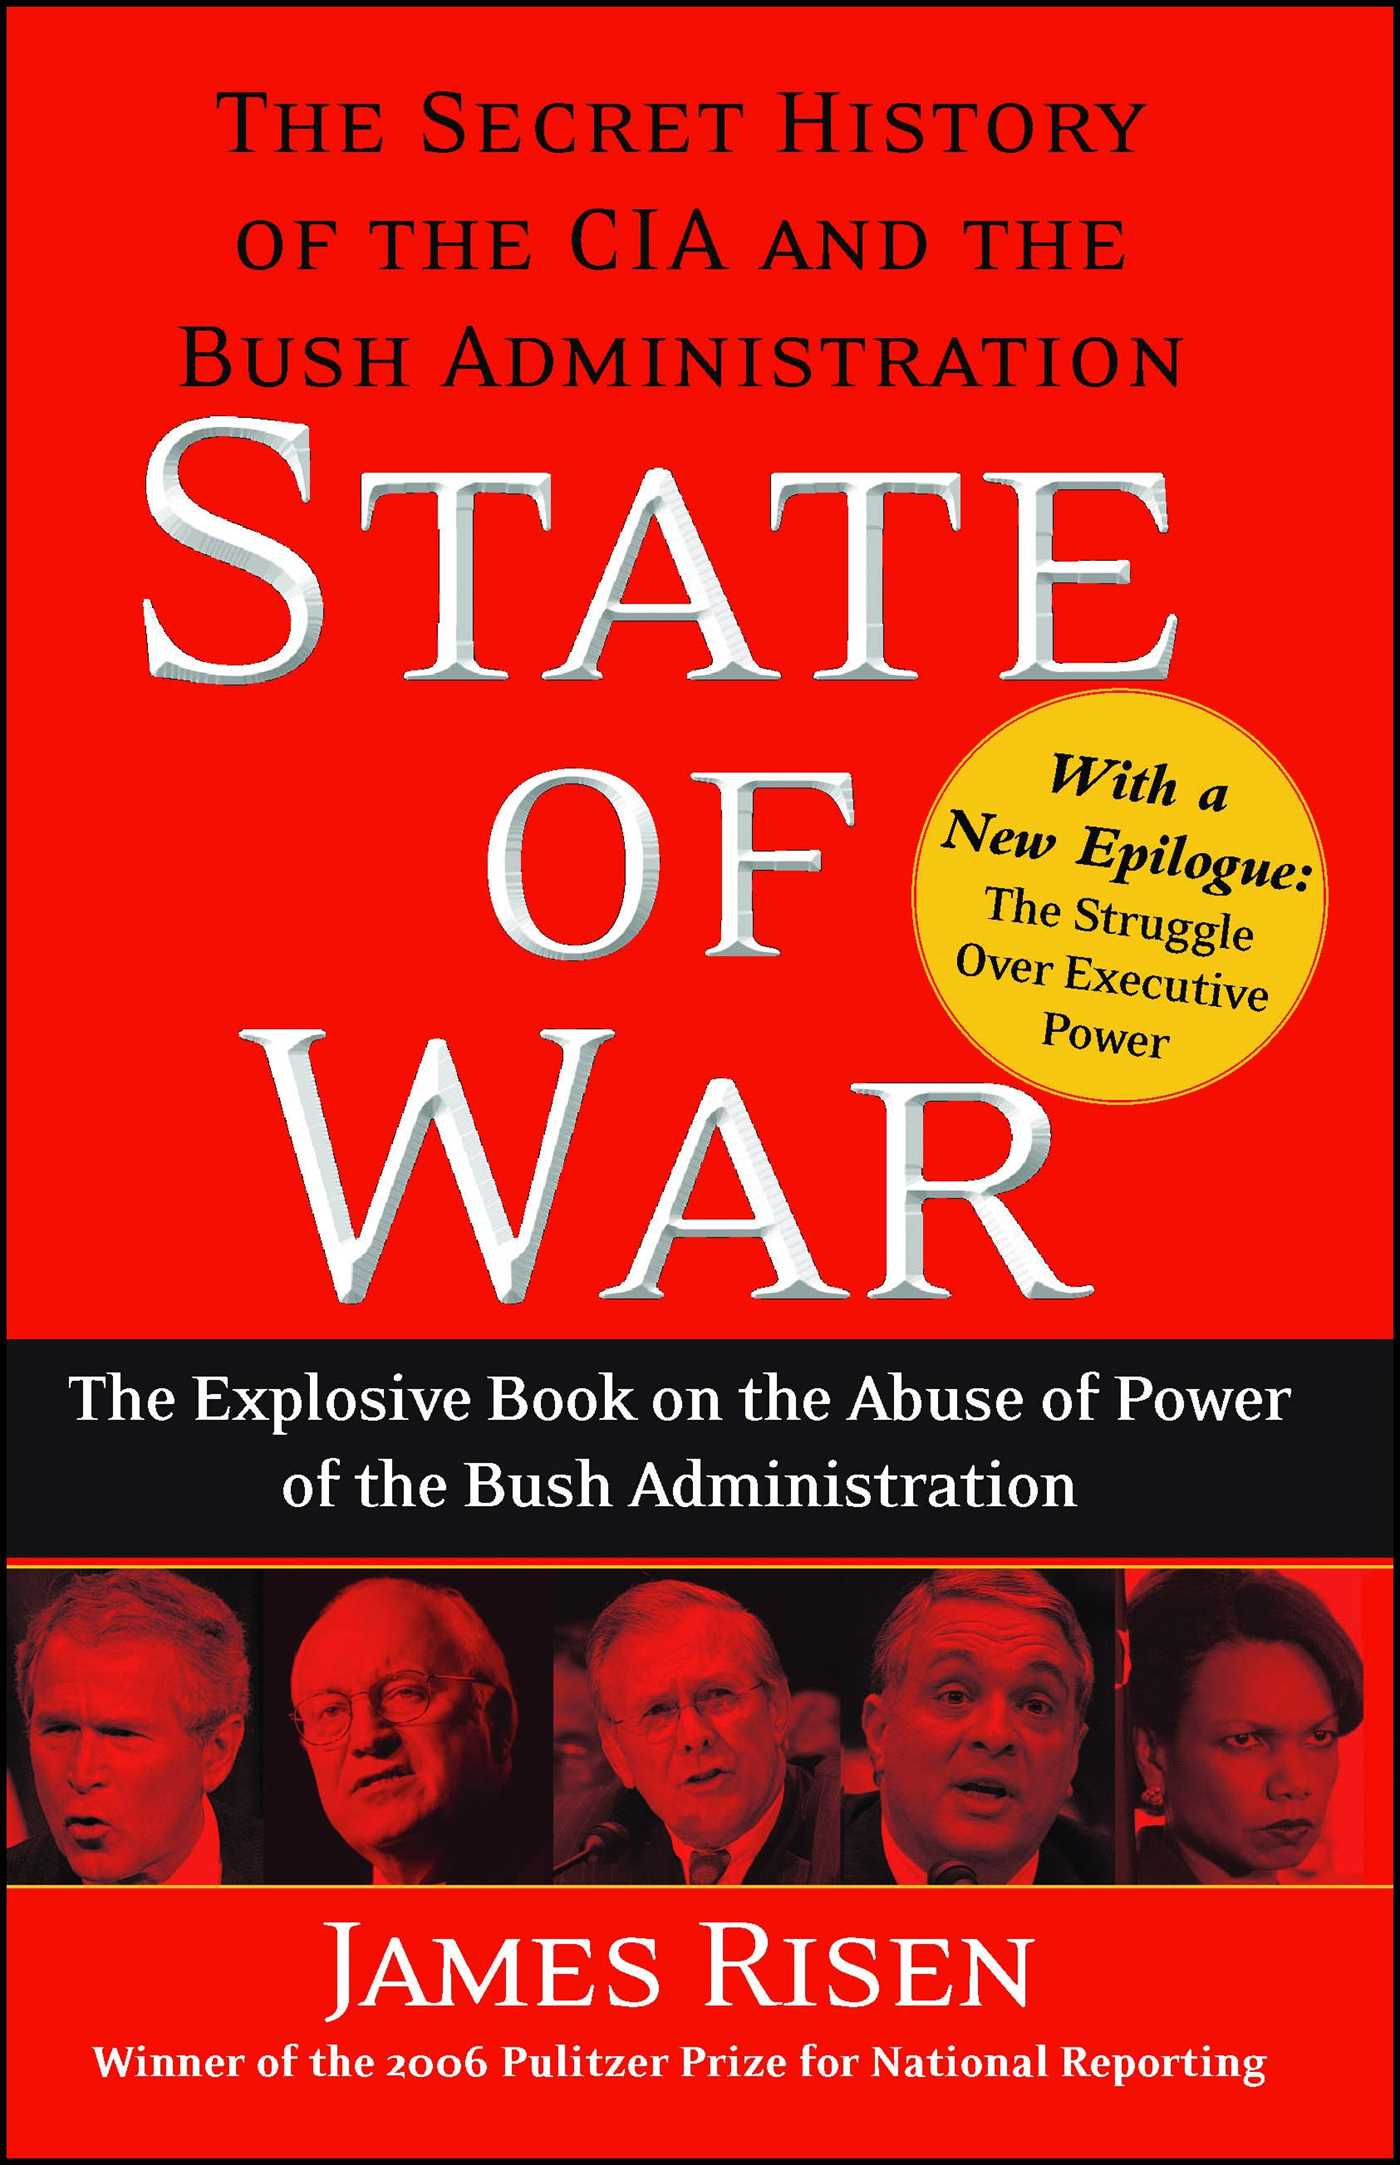 State-of-war-9780743270670_hr